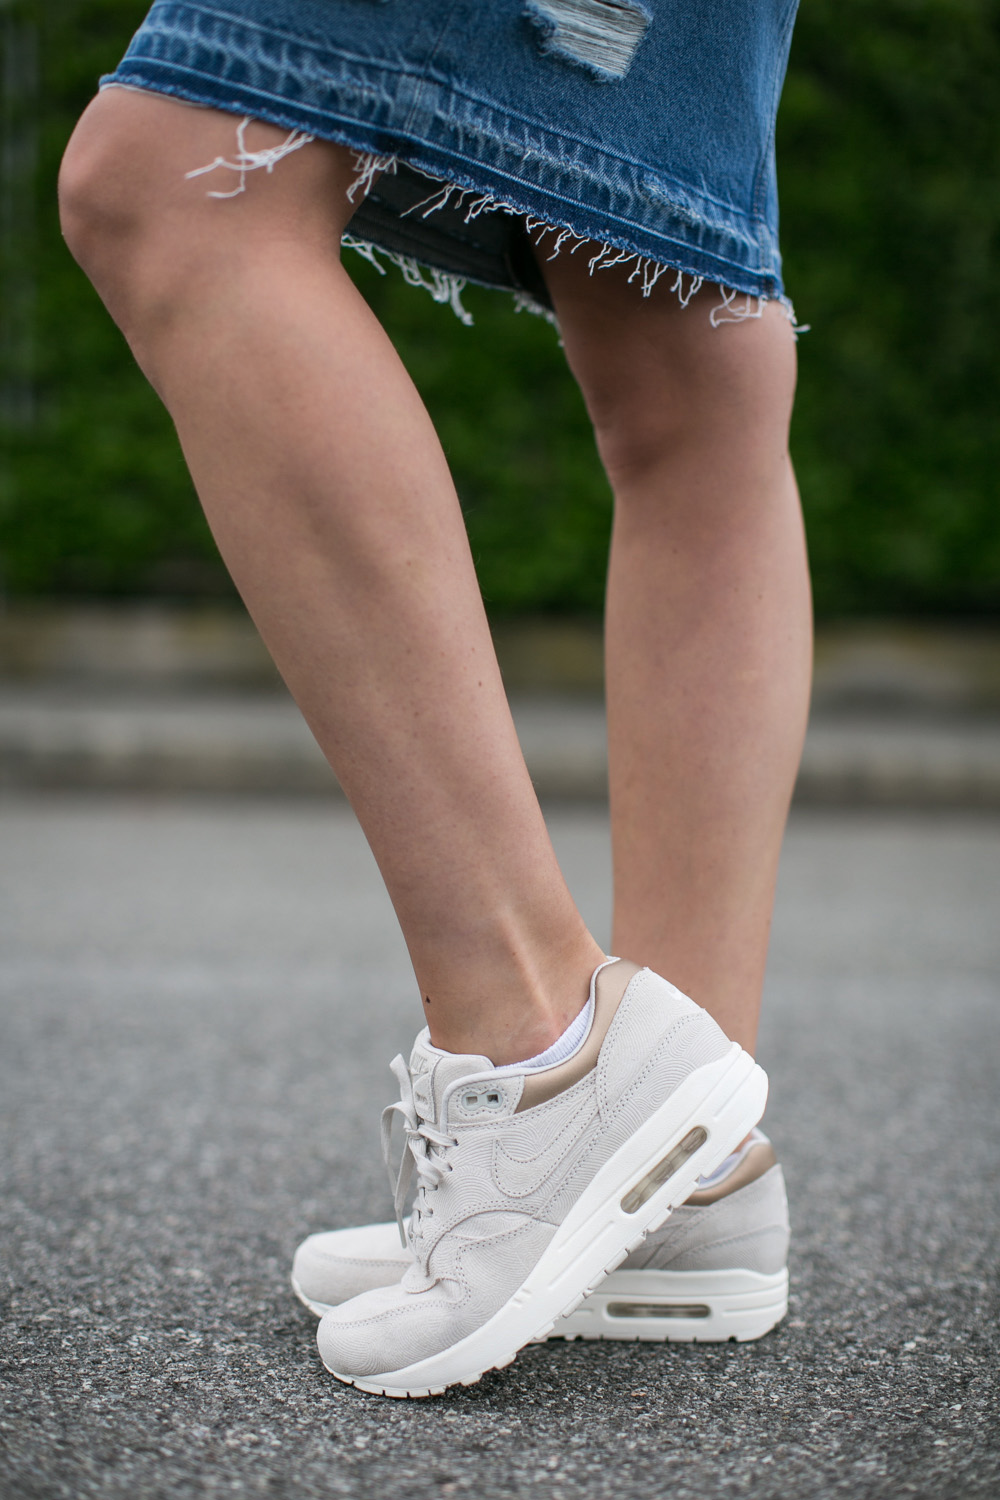 darya kamalova thecablook fashion blogger streetstyle louis vuitton lv palm springs backpack with nike air max trainers italy-18